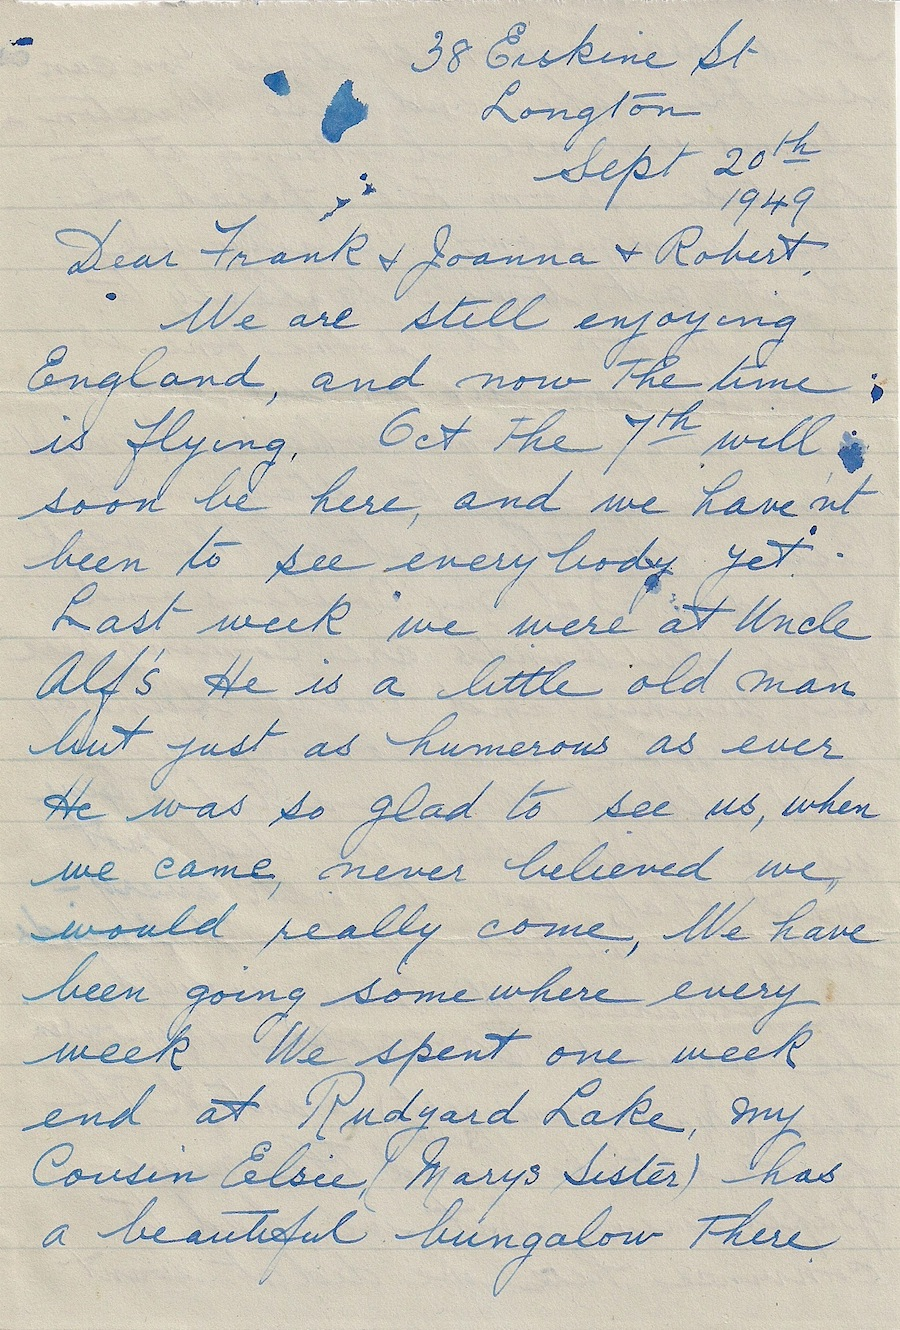 minnie-wilkinson-letter-from-england-1948-3